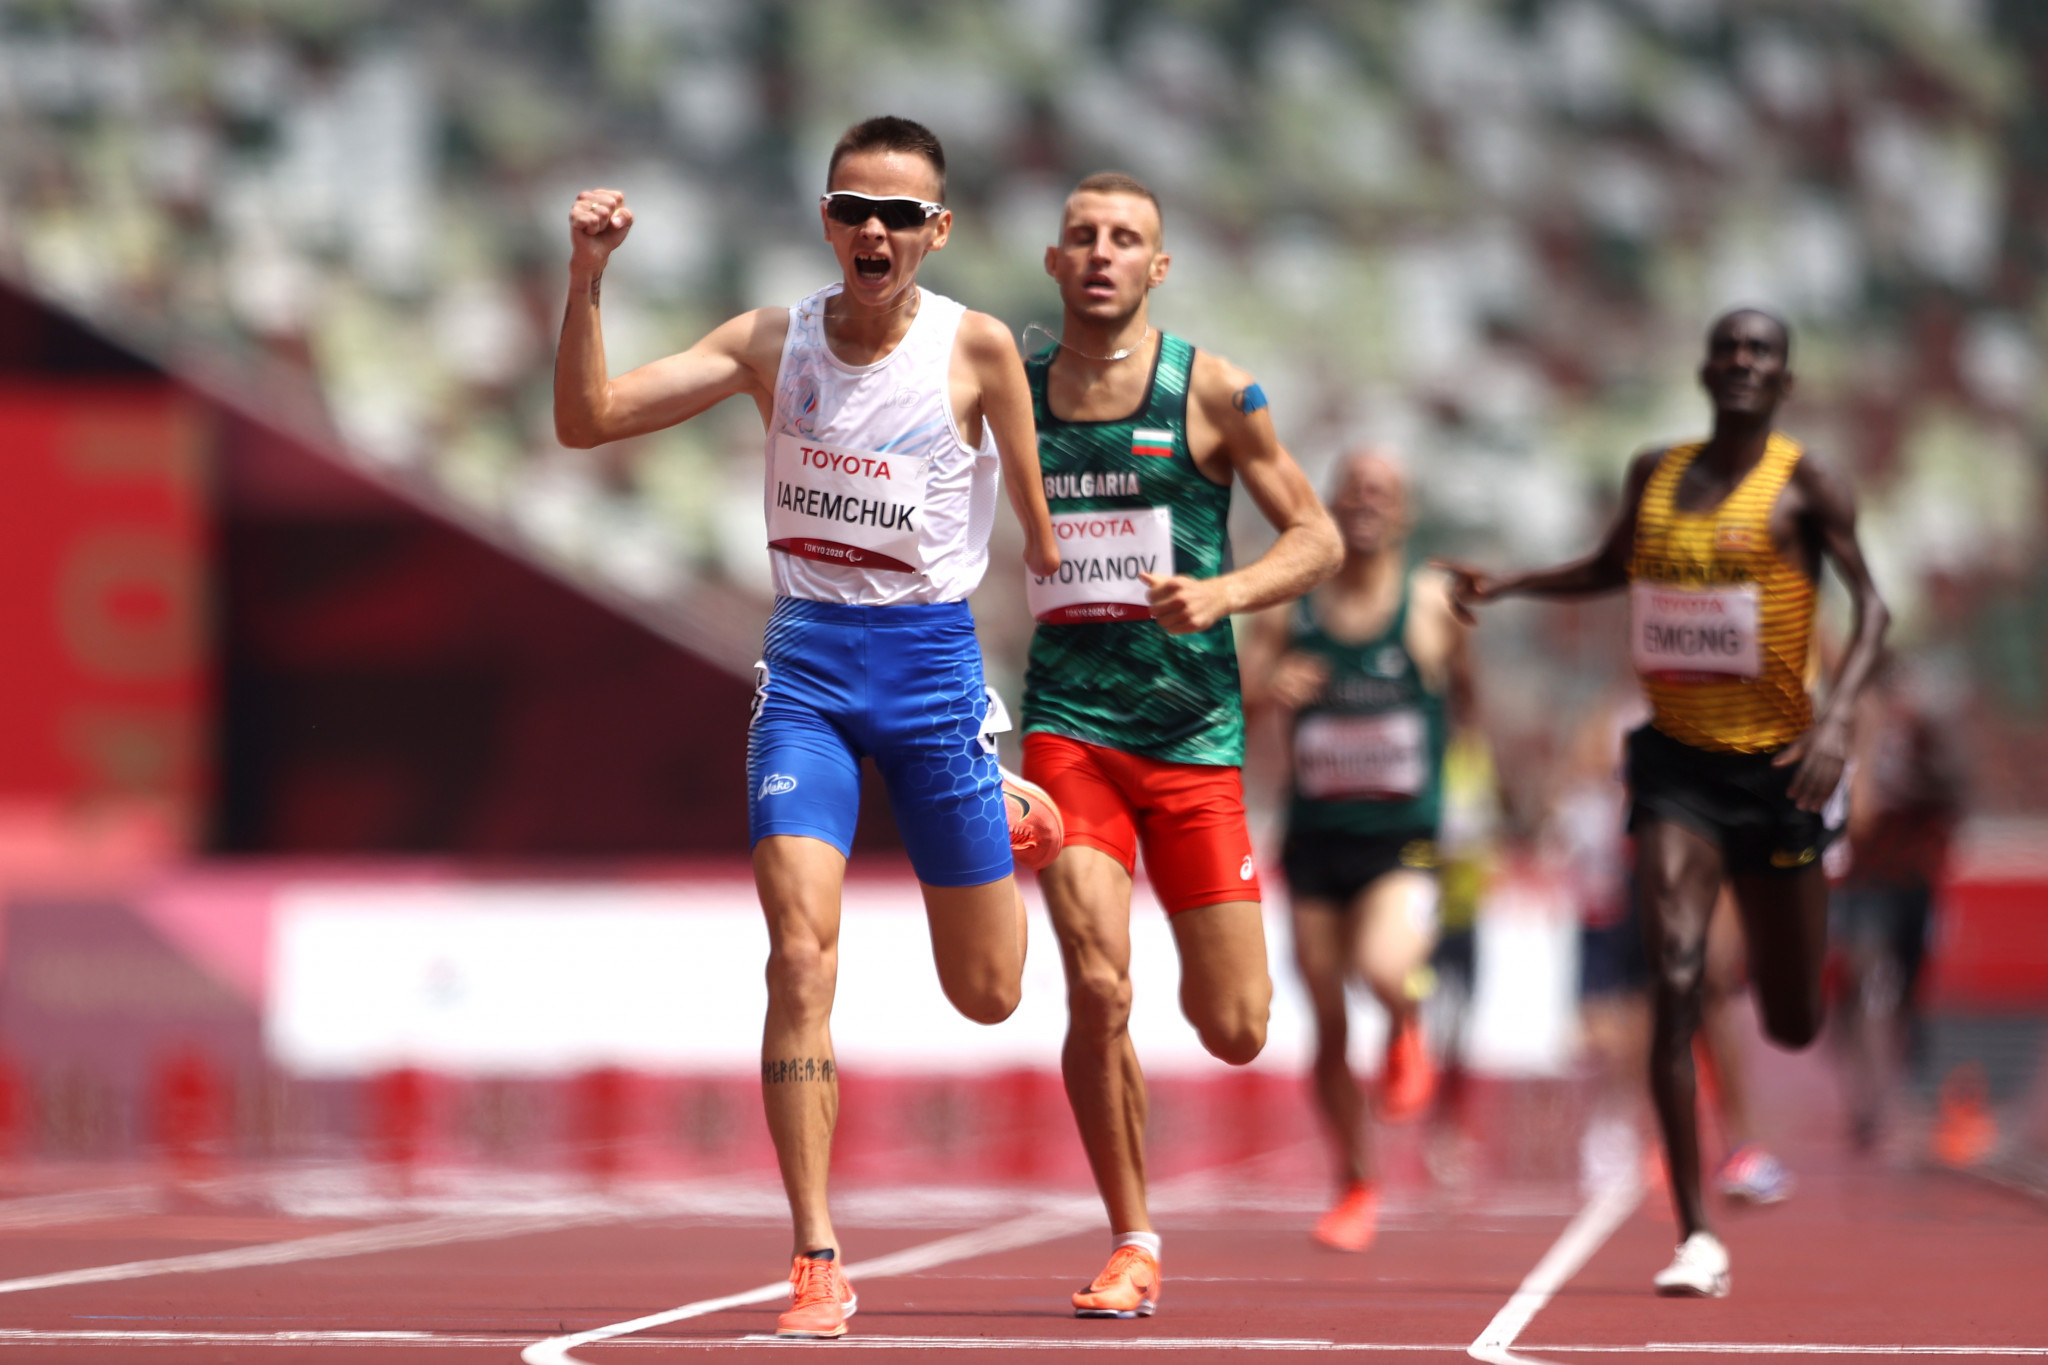 Aleksandr Iaremchuk saw off the challenge from Hristiyan Stoyanov to clinch the gold medal ©Getty Images